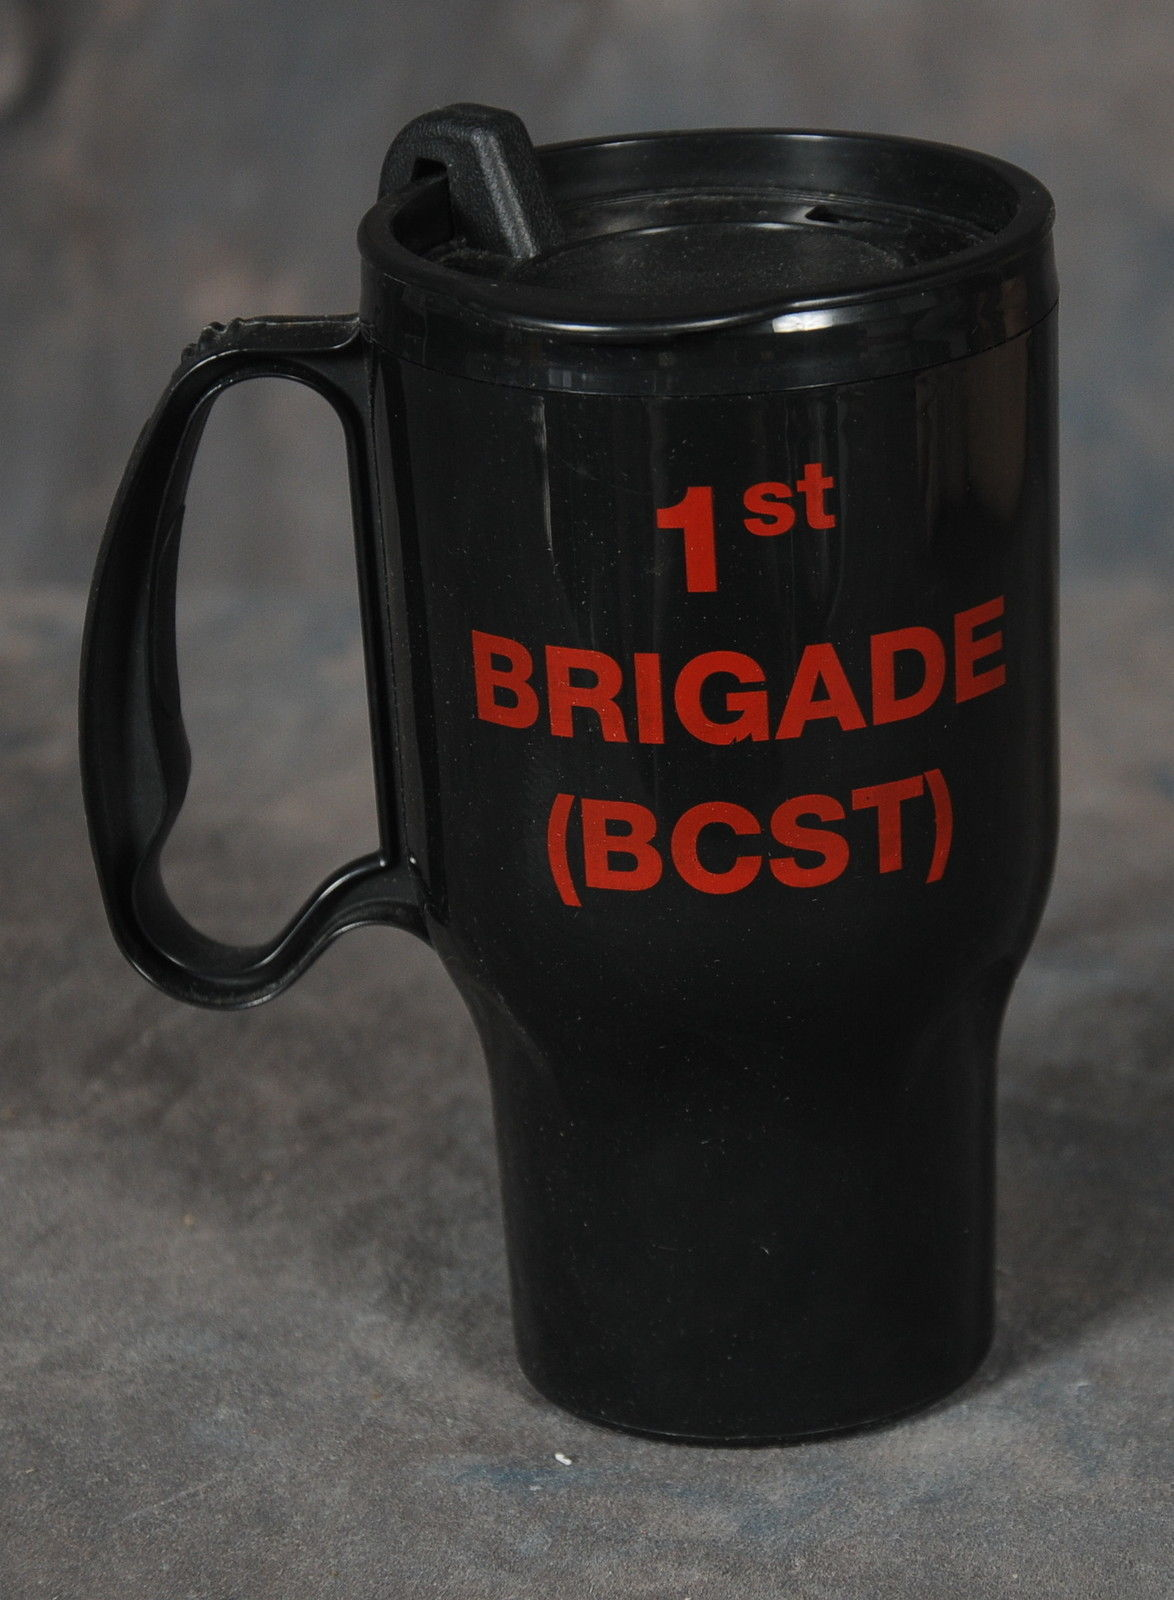 Primary image for 1st Brigade (BCST) 78th Division (Training Support) Plastic Cup